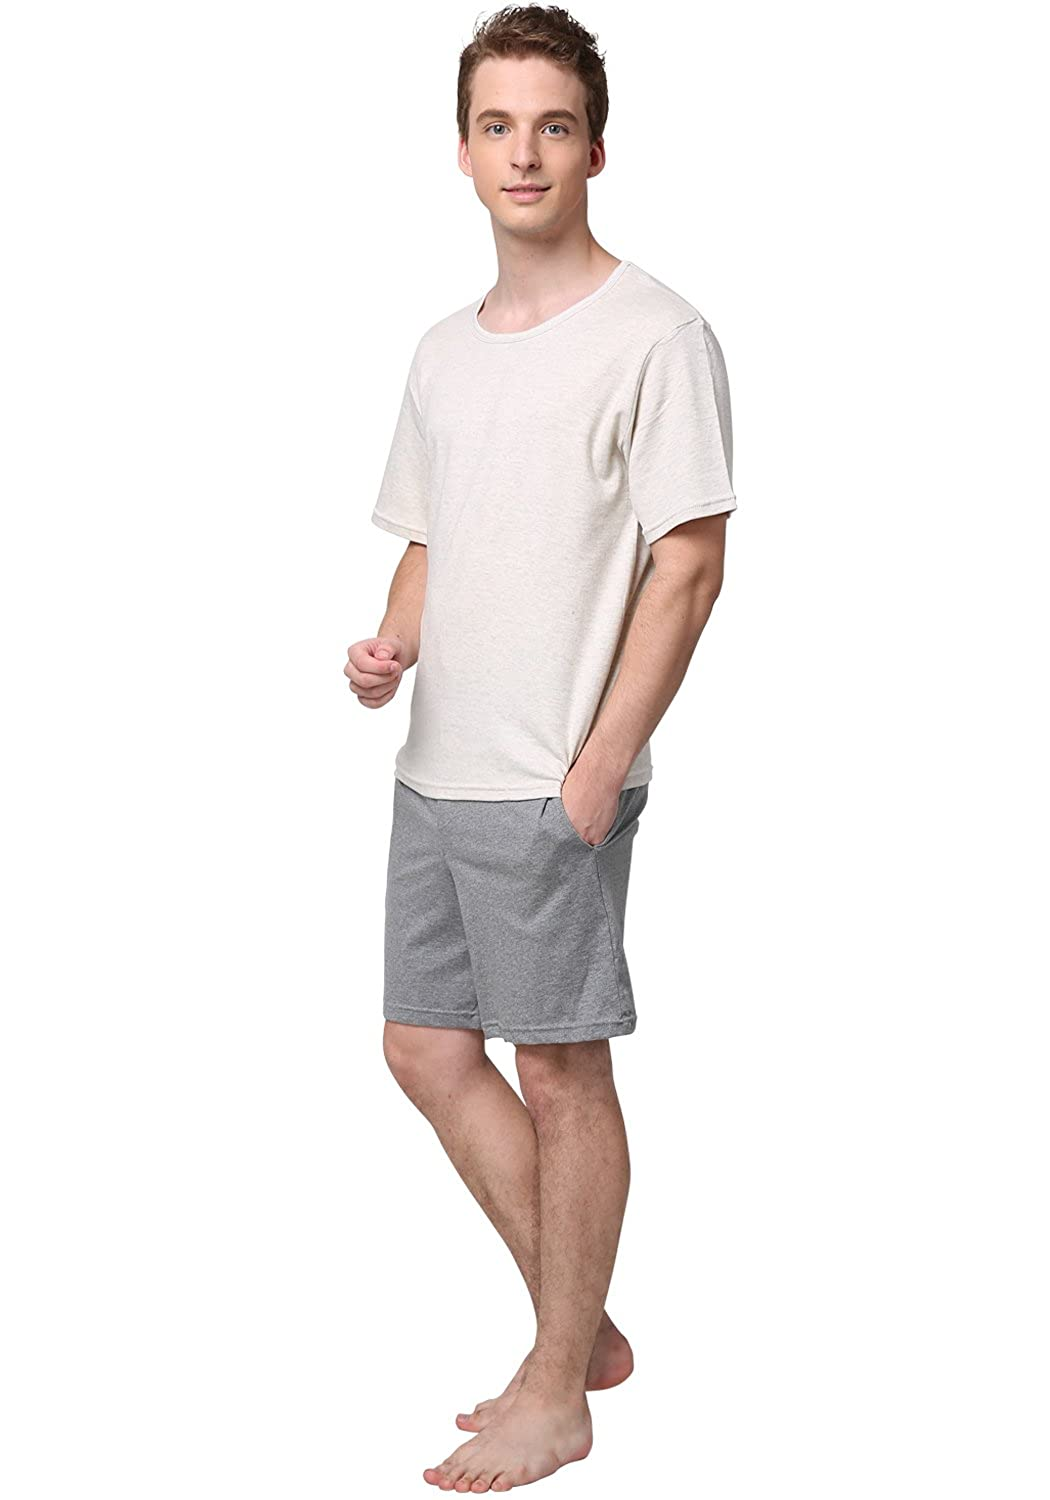 Godsen Mens Basic Cotton Pajama Short Sets Sleepwear Short Sleeve 8331601